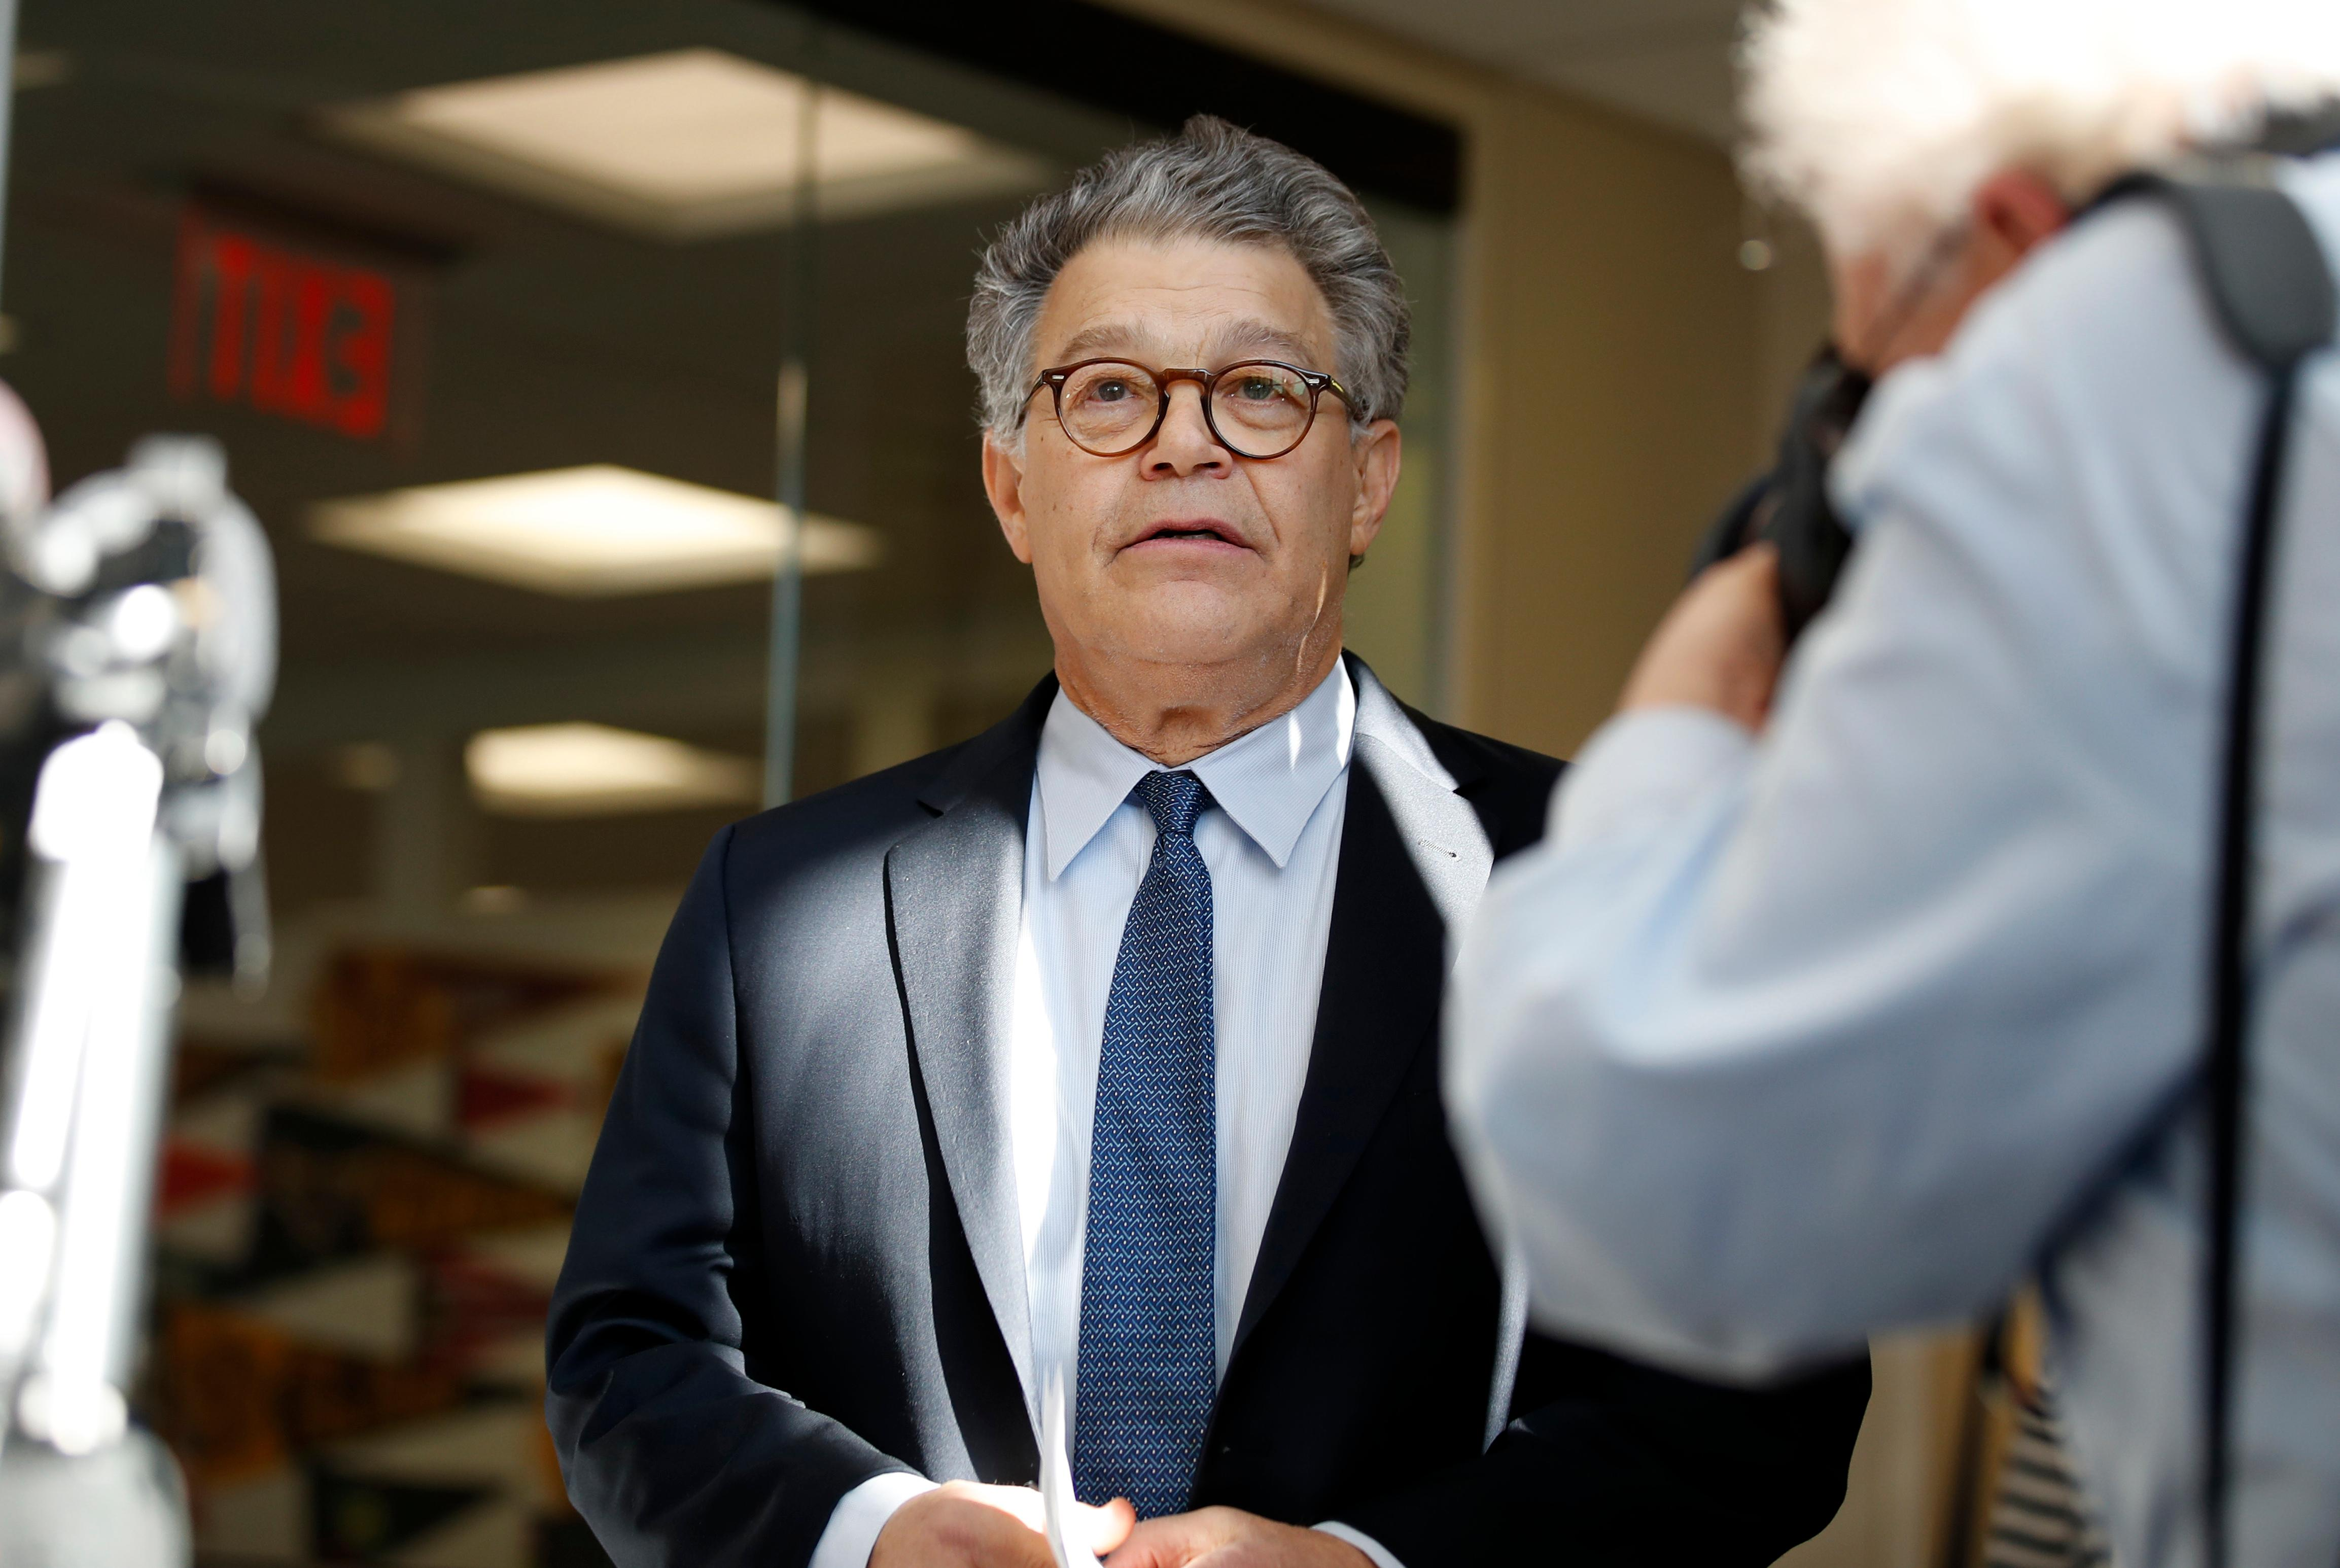 Sen. Al Franken, D-Minn., arrives to speak to the media on Capitol Hill, Monday, Nov. 27, 2017 in Washington. (AP Photo/Alex Brandon)